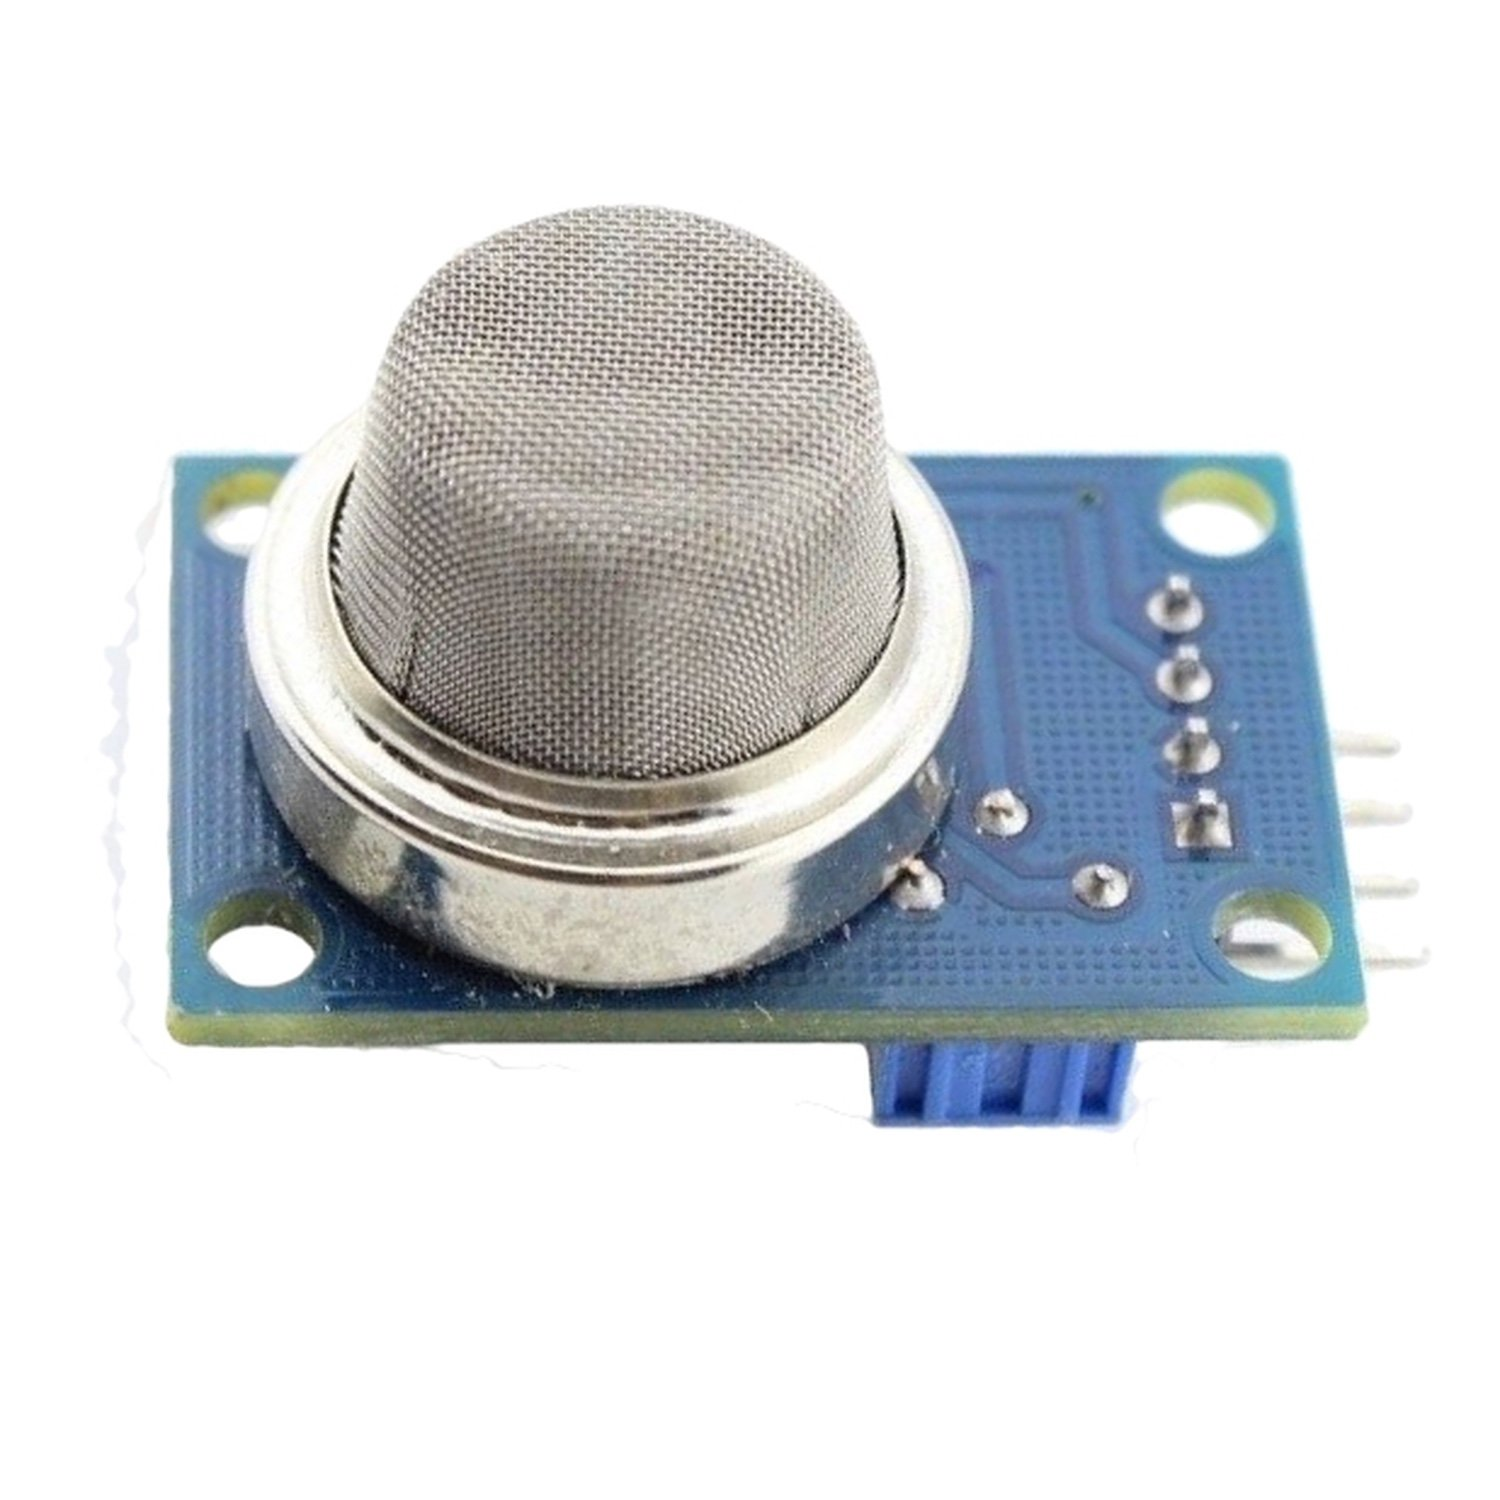 цена на MQ135 MQ-135 Air Quality Sensor Hazardous Gas Detection Module [Arduino Compatible]